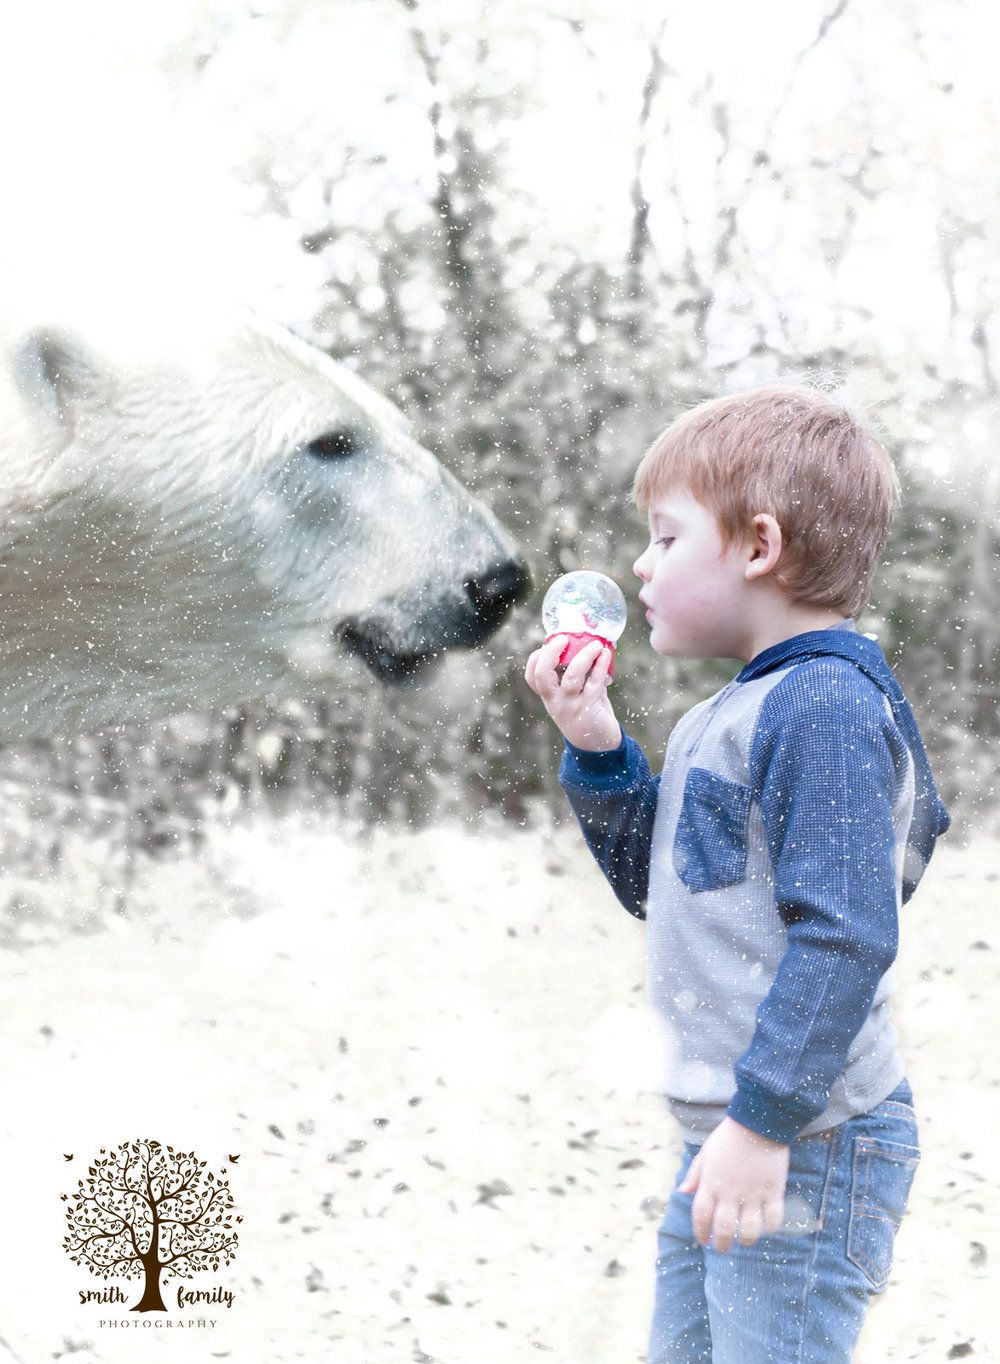 polar_bear_winter_wonderland_smith_family_photography